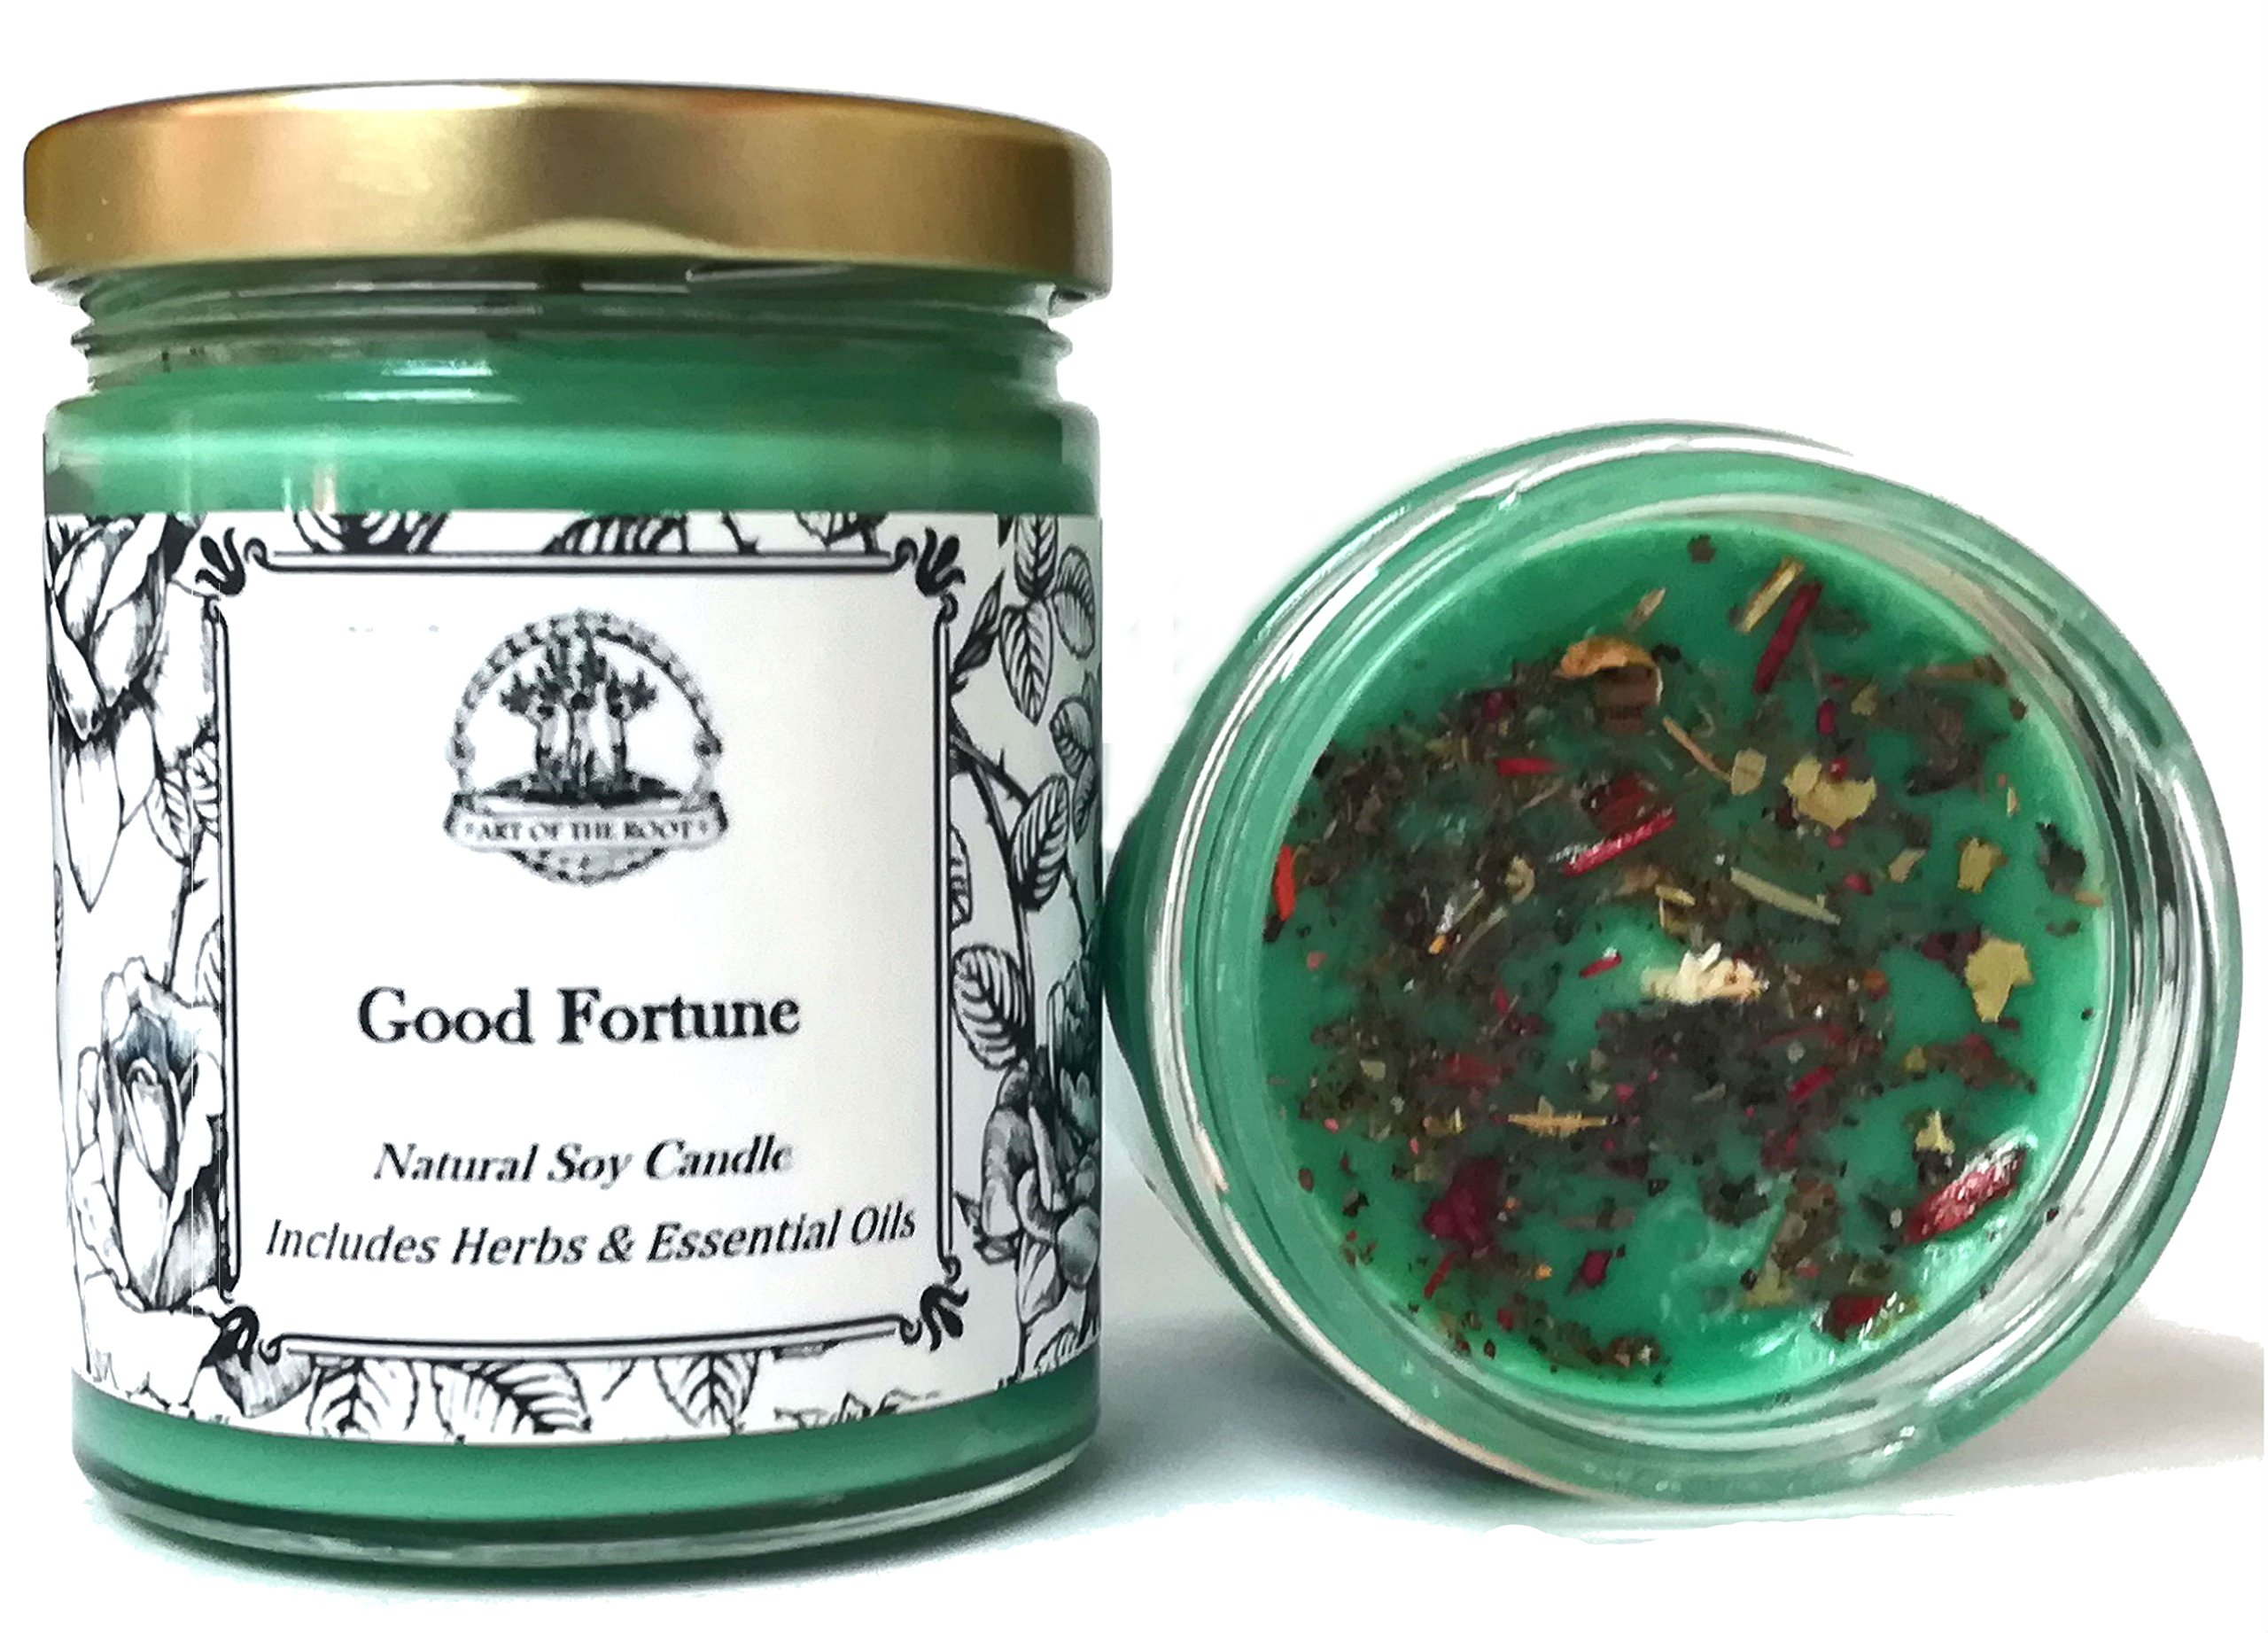 Good Fortune Soy Spell Candle 8 oz for Prosperity, Blessings, Healing & Abundance (Wiccan, Pagan, Hoodoo, Magick)